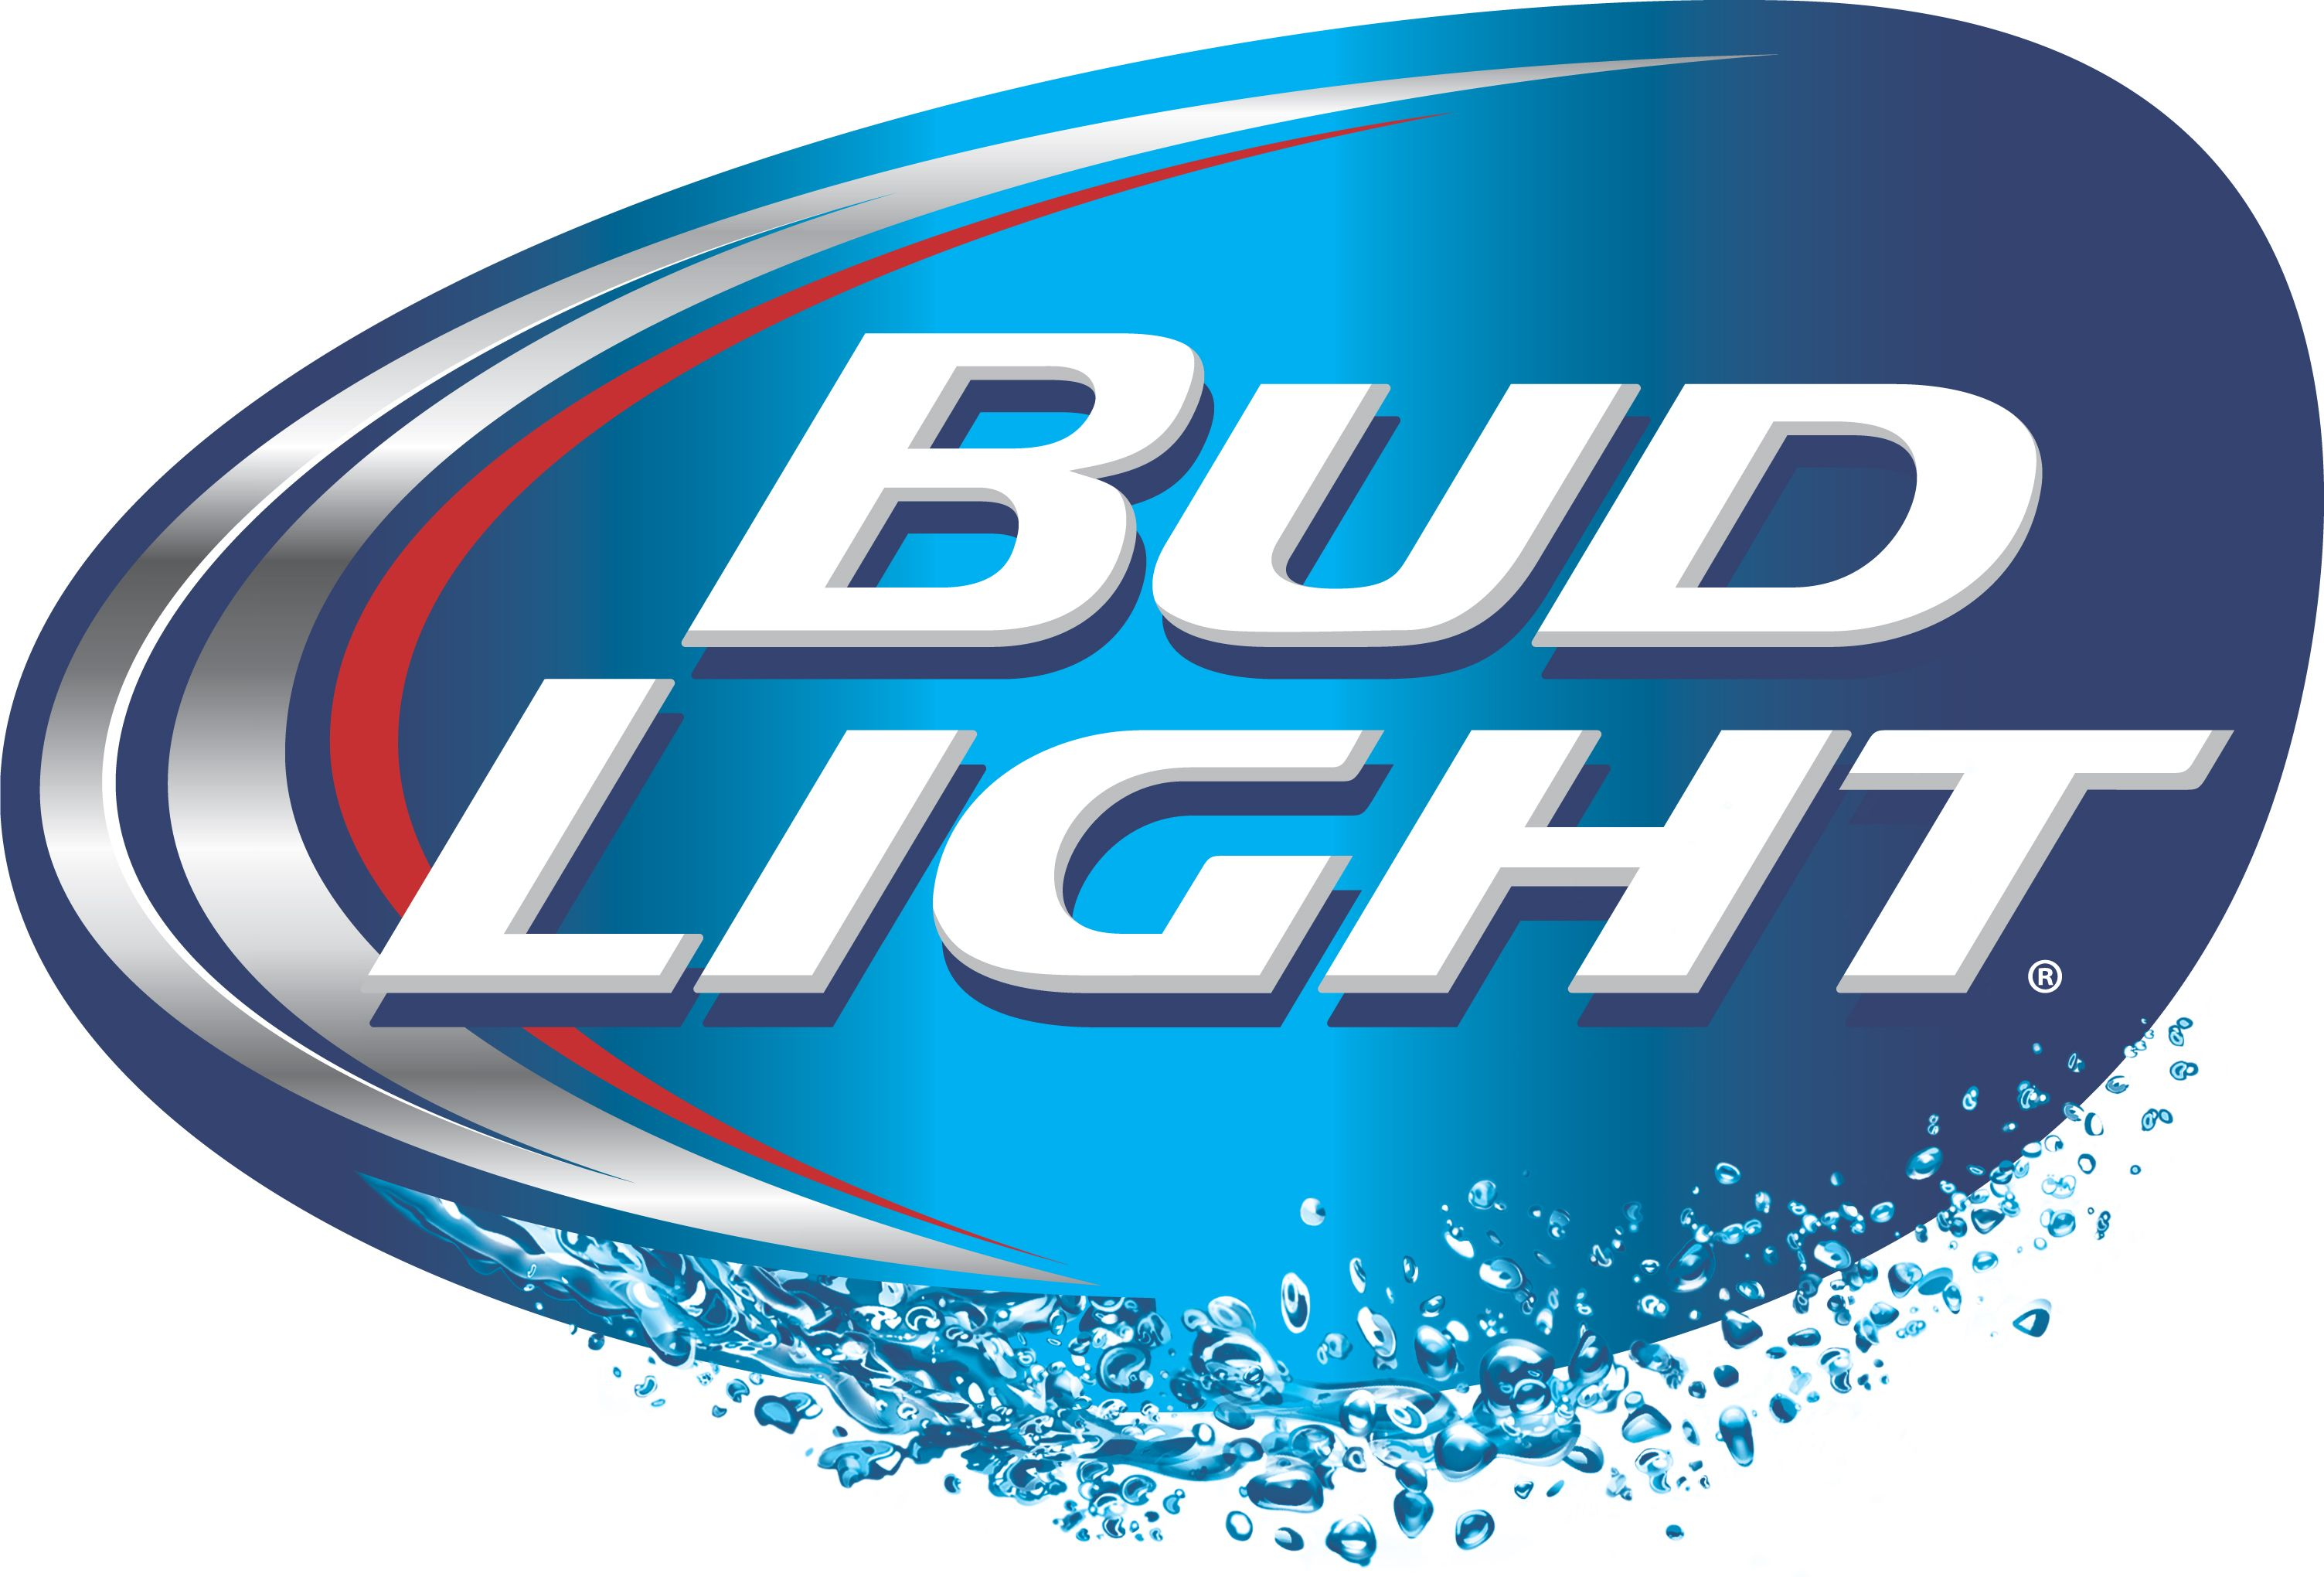 bud light logo pictures Google Search beer Pinterest